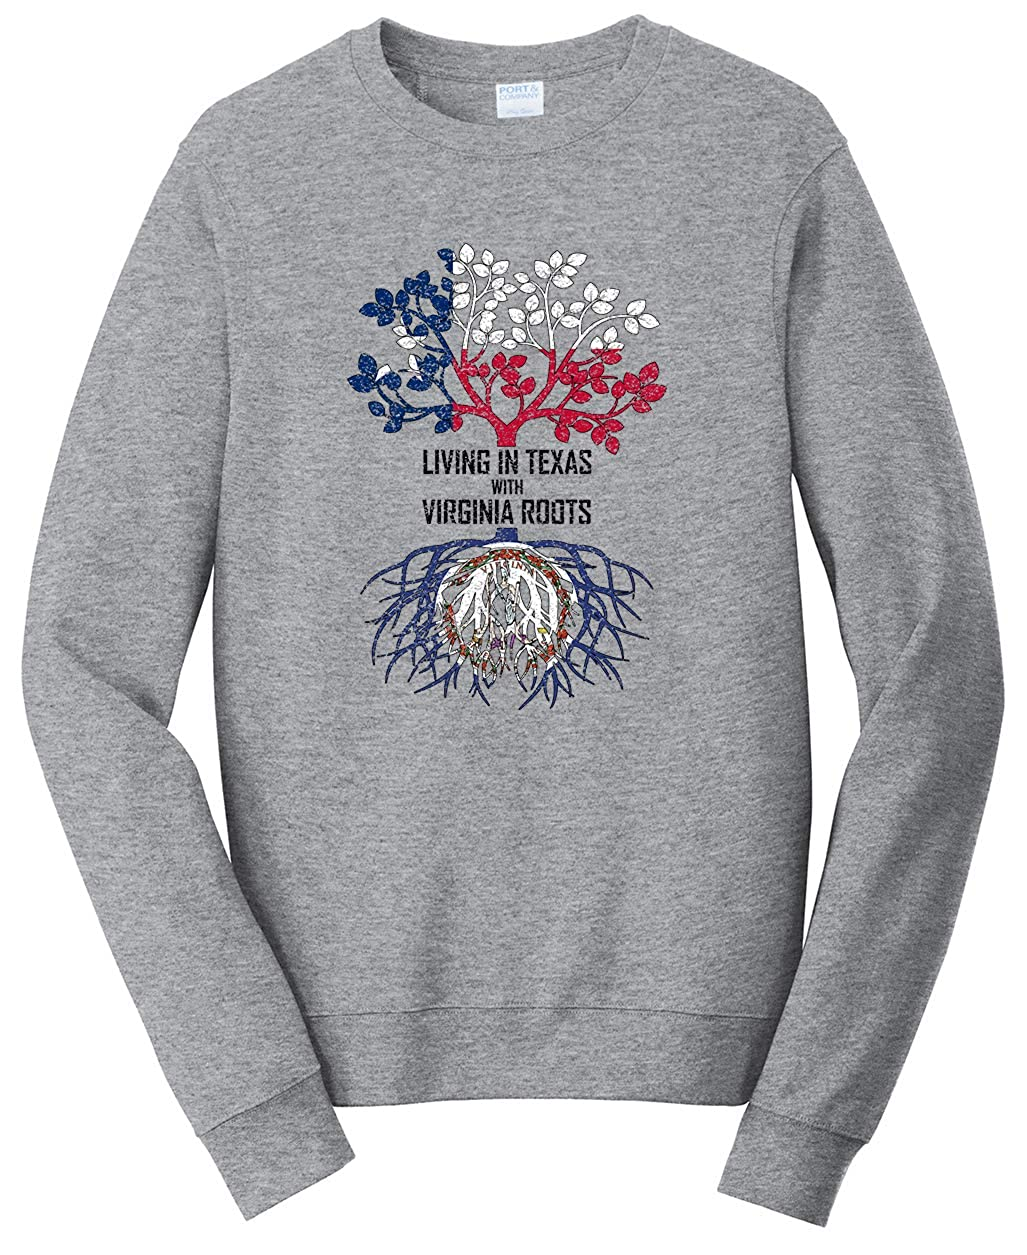 Tenacitee Unisex Living in Texas Virginia Roots Sweatshirt